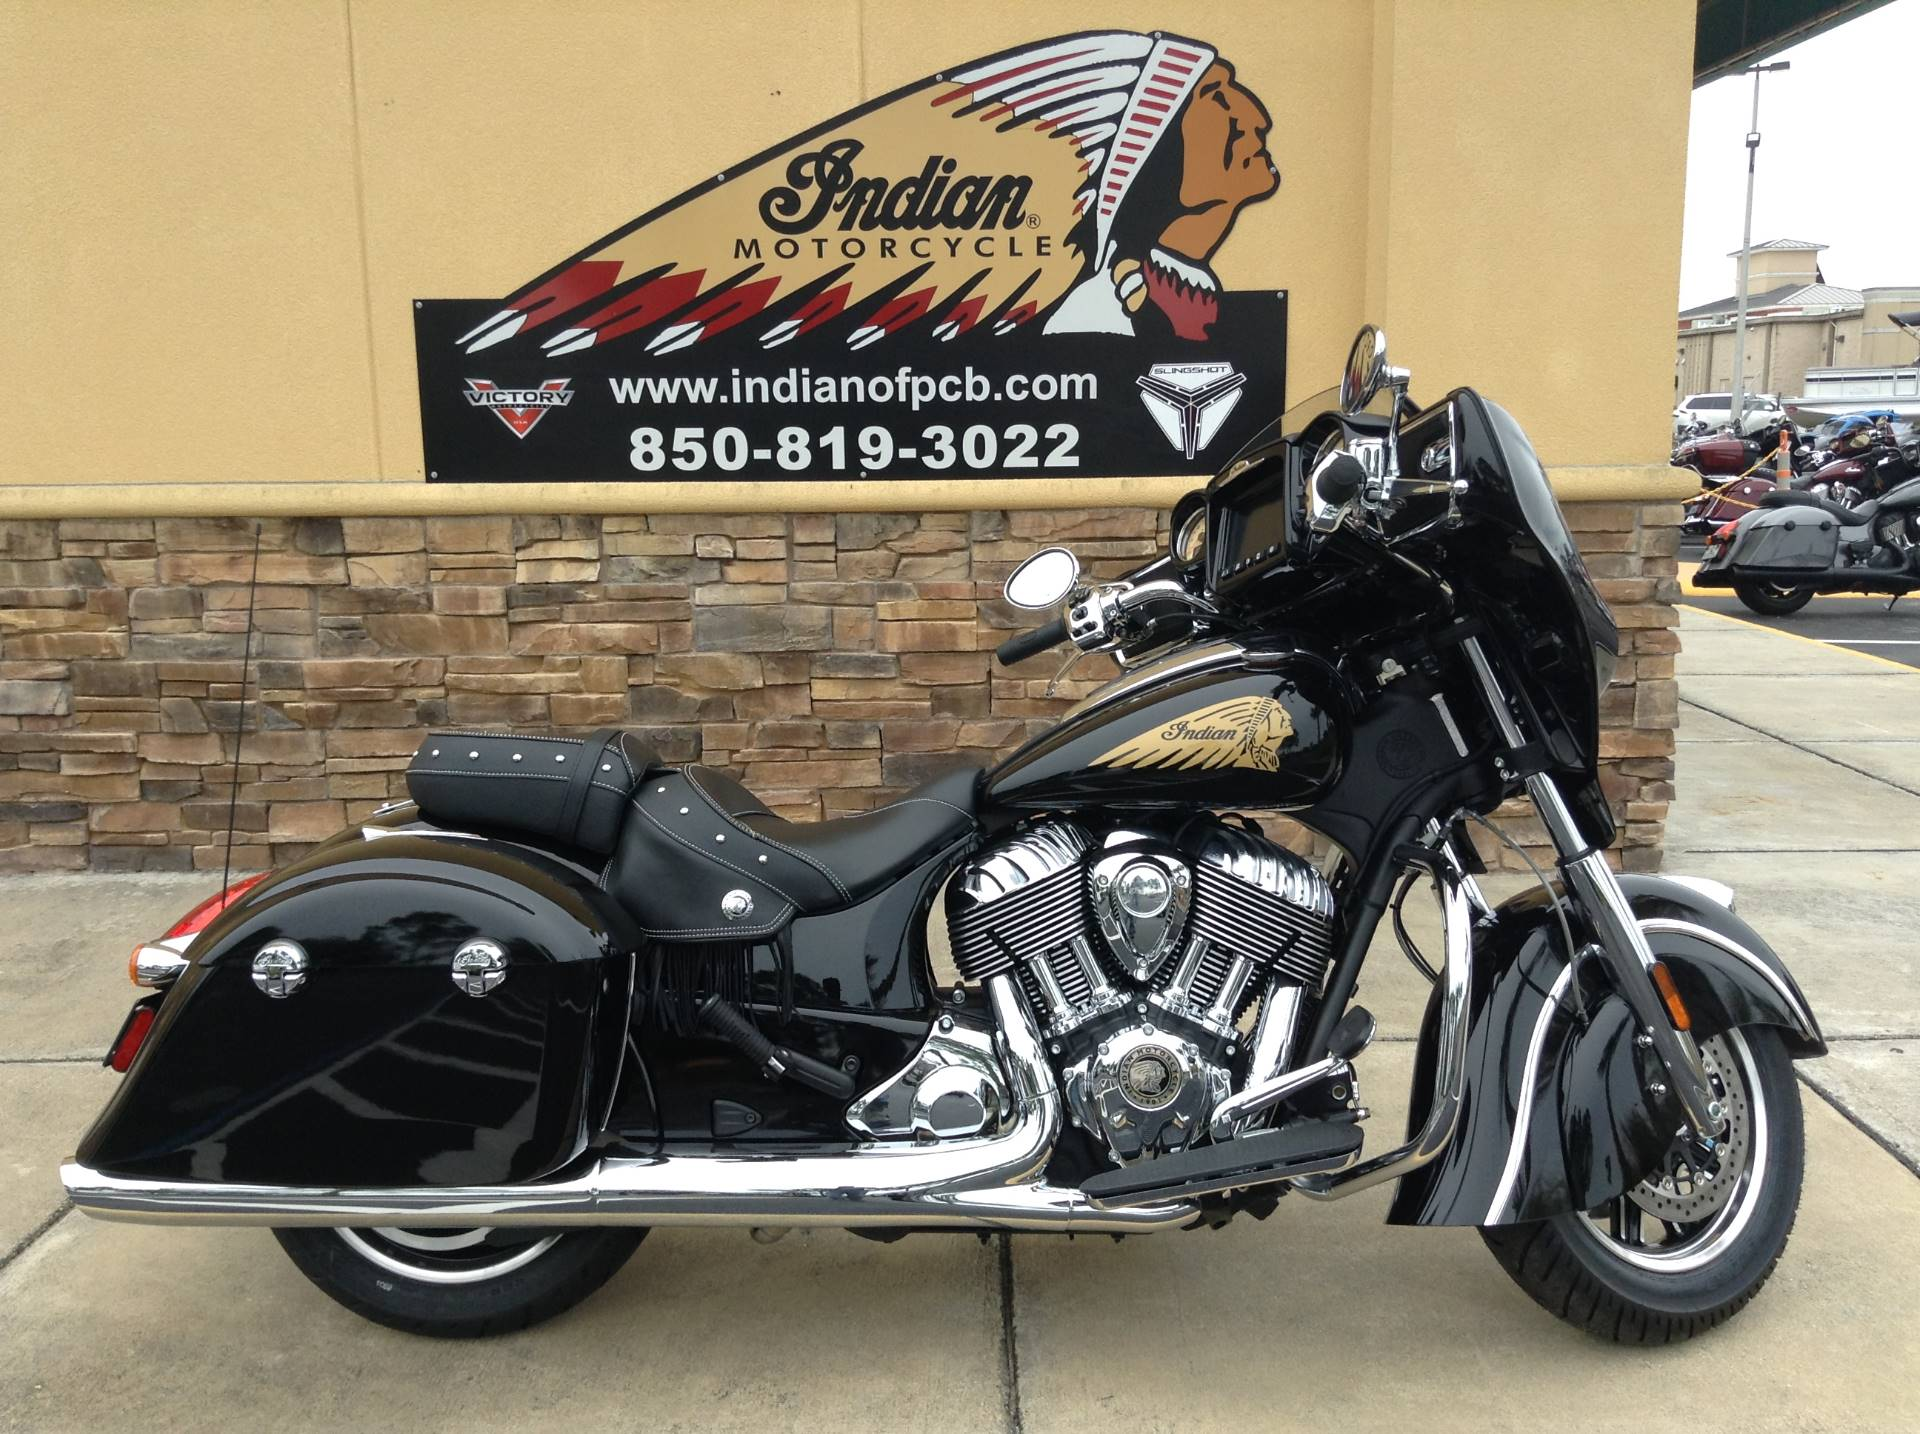 2019 Indian CHIEFTAIN in Panama City Beach, Florida